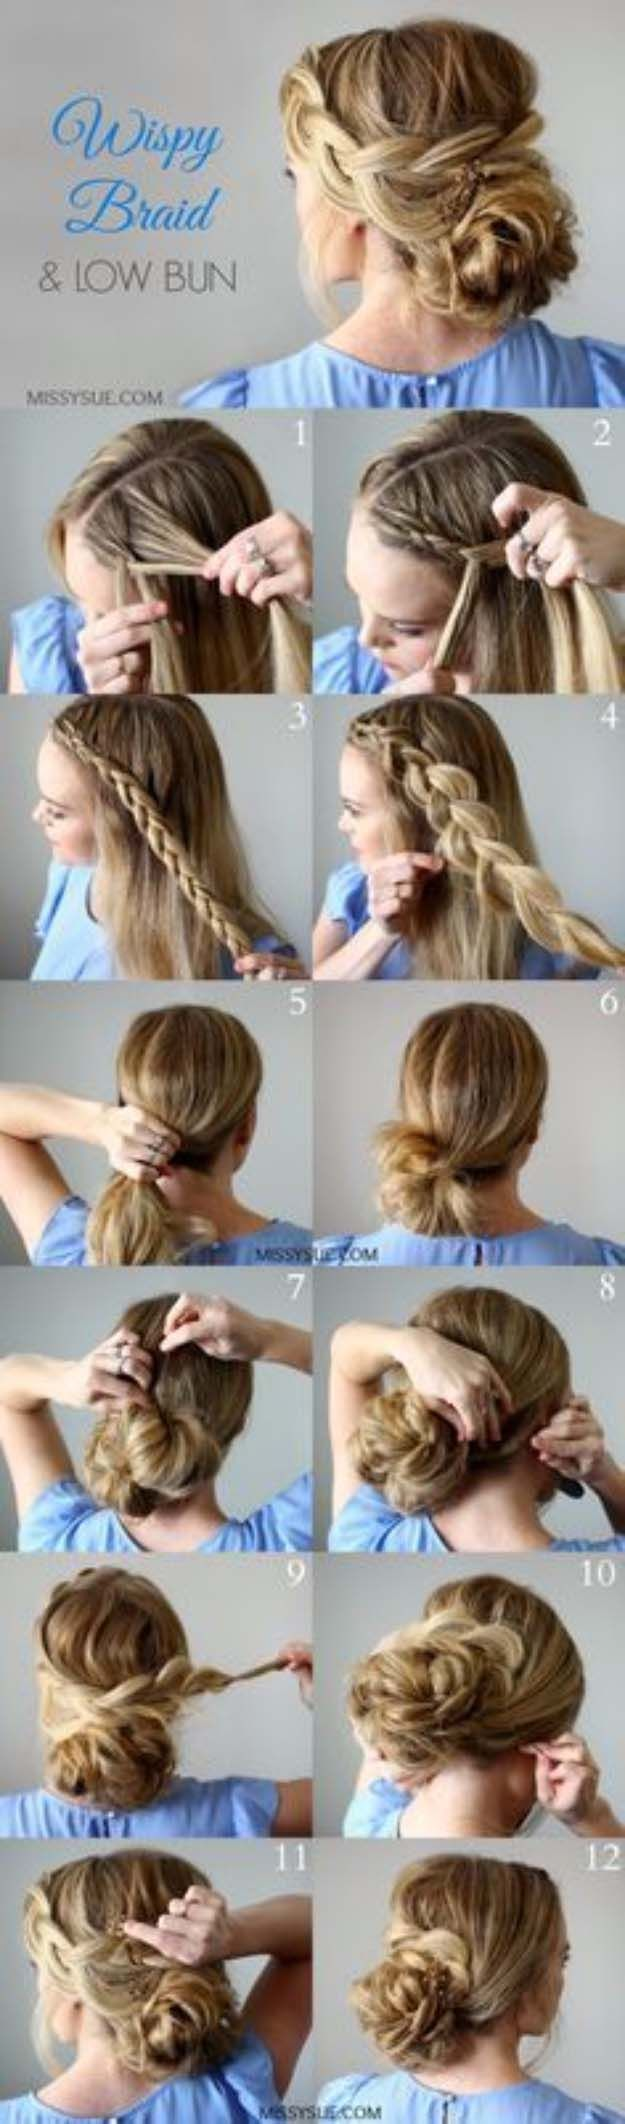 Best Hairstyles for Brides - Wispy Braid and Low Bun- Amazing Hair Styles and Lo...